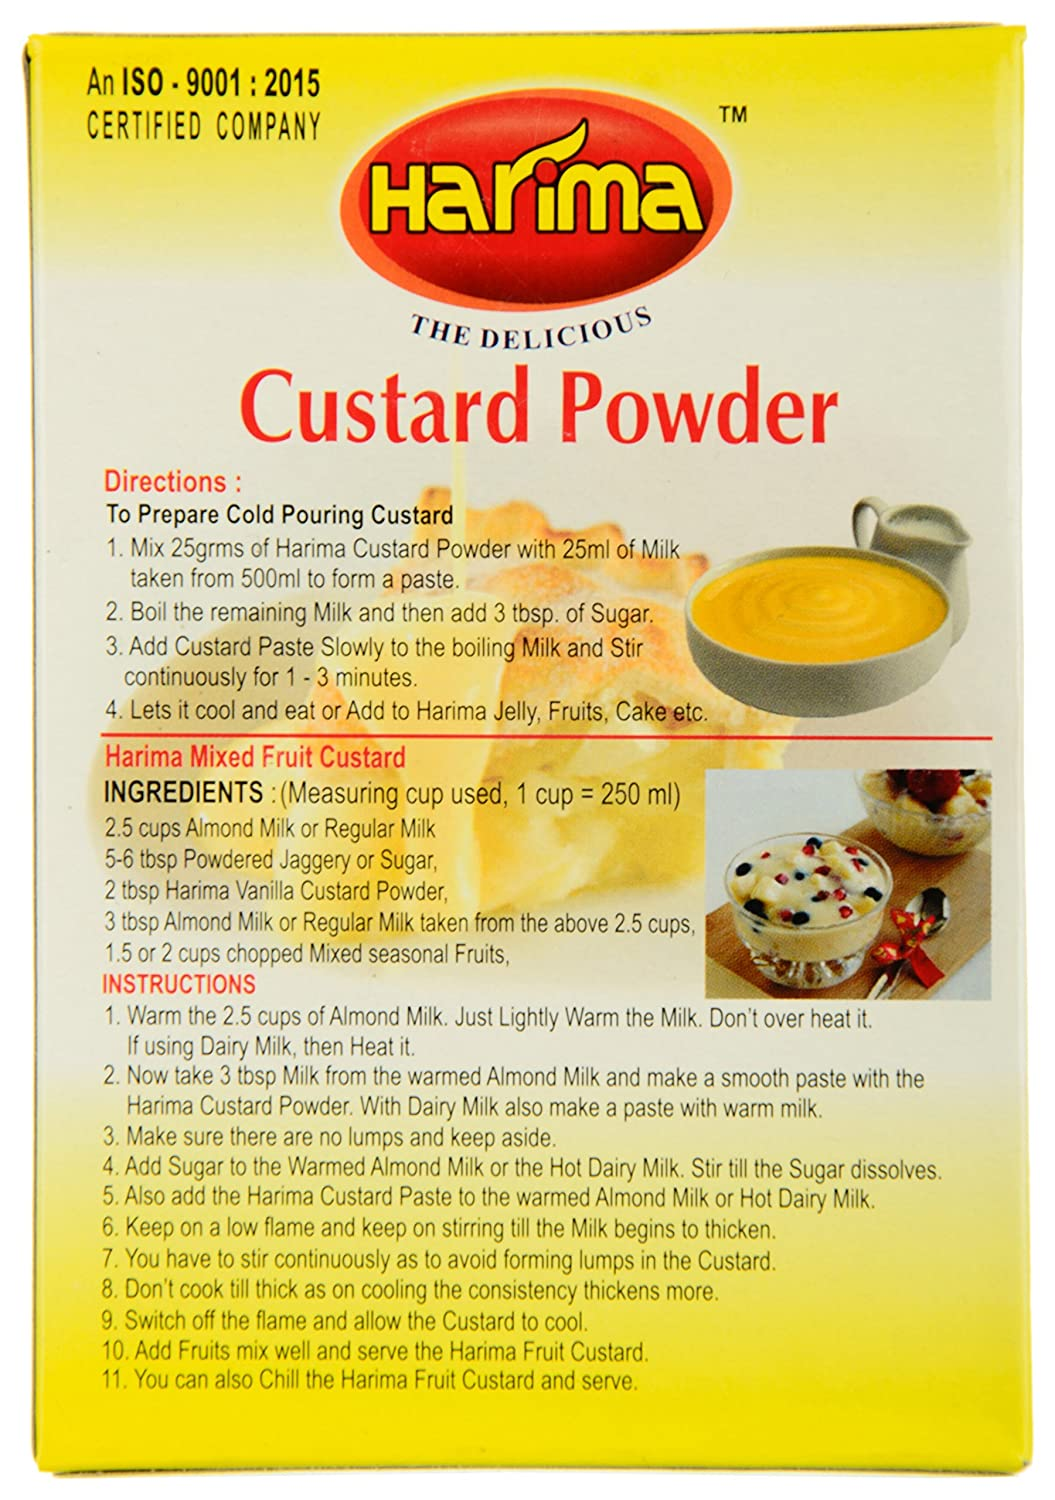 Shelf life of the custard. How much can you store the custard